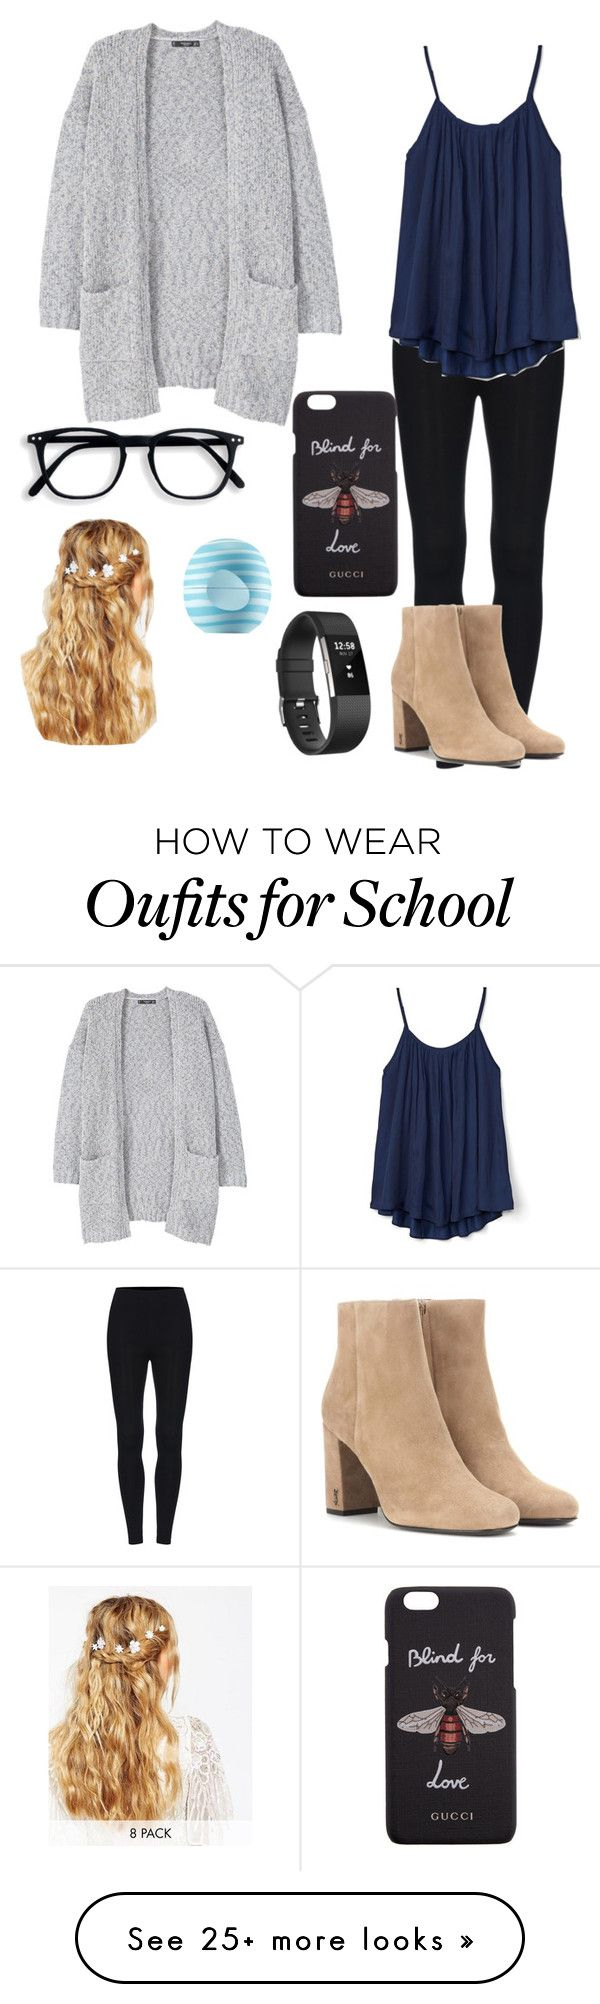 """School"" by kiwicafe on Polyvore featuring MANGO, Gap, Yves Saint Laurent, Gucci, ASOS, Eos and Fitbit"